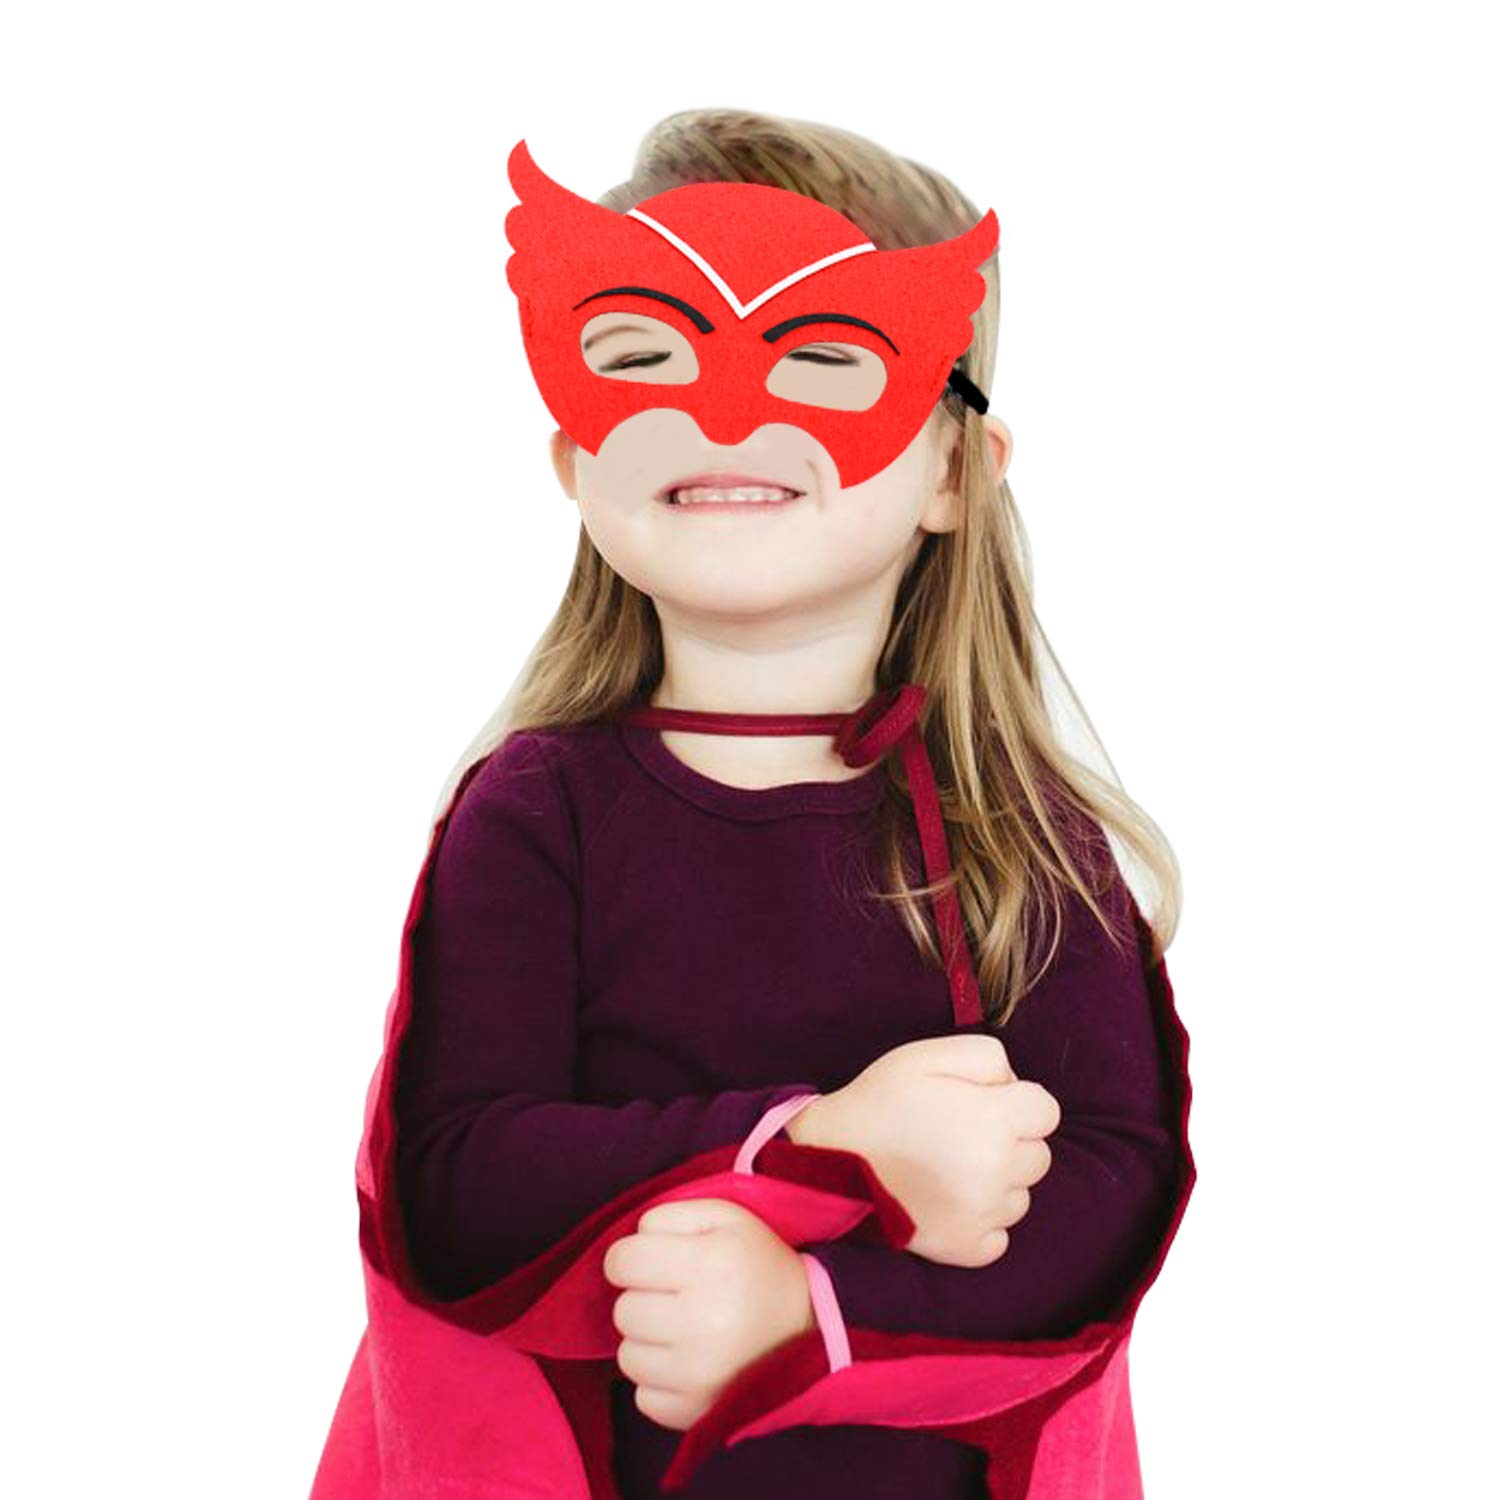 Cartoon Heros Felt Masks 12 pcs Party Supplies Cosplay Character Mask Party Favors for Kids Boys or Girls